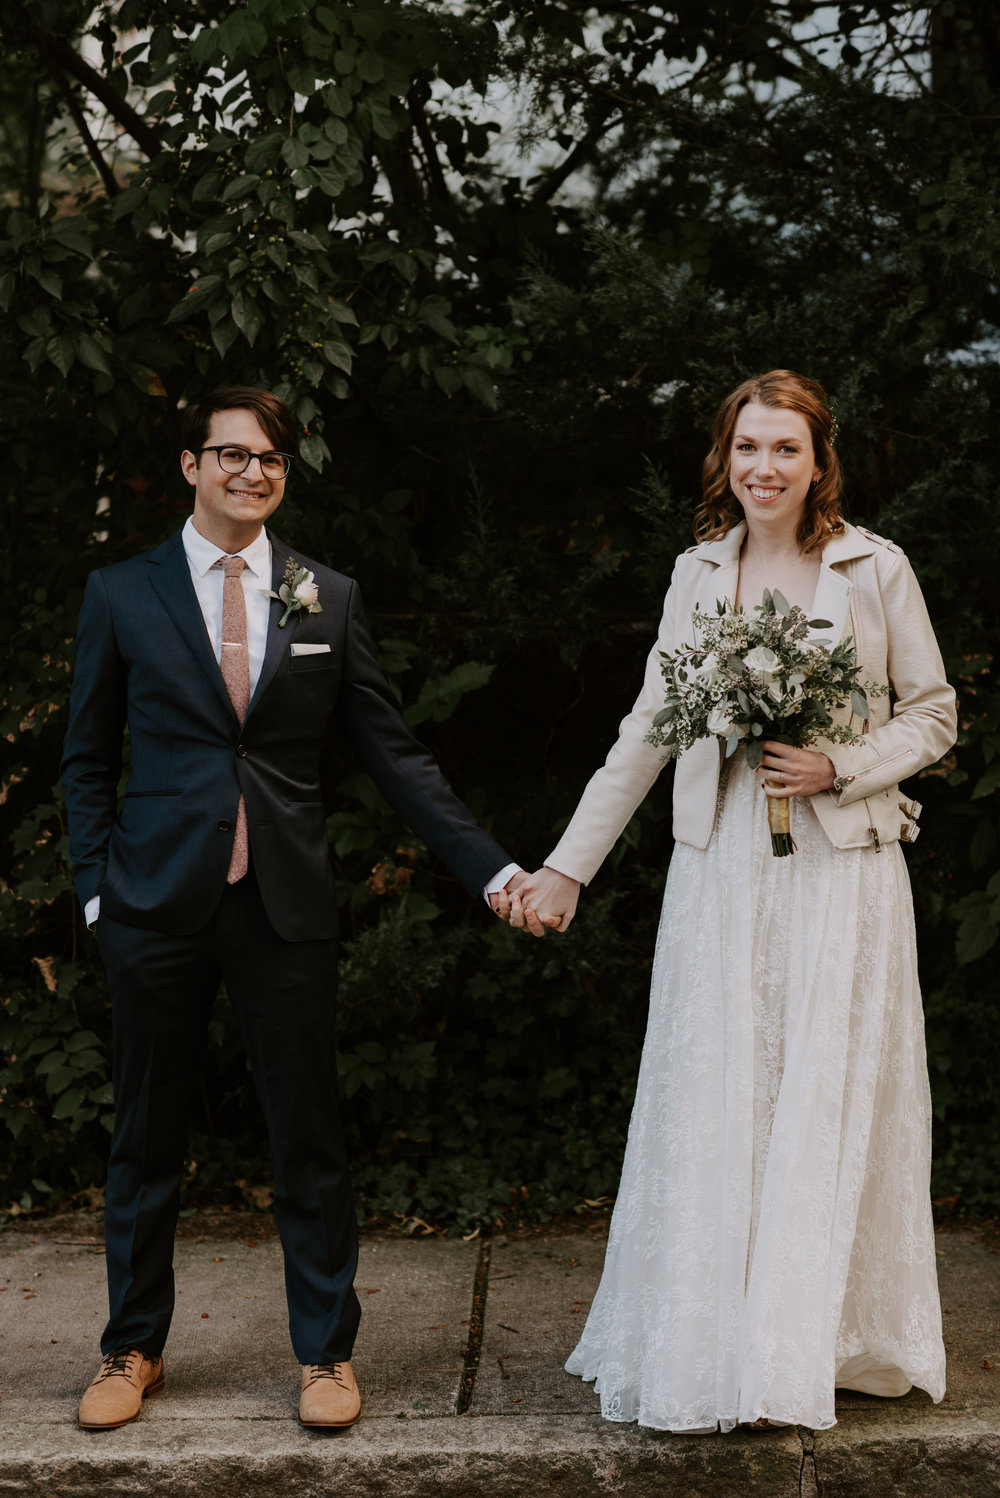 Theresa and Kyle's Romantic Greenhouse Wedding At The Lyman Estate | Boston Wedding Photographer | Madeline Rose Photography Co.